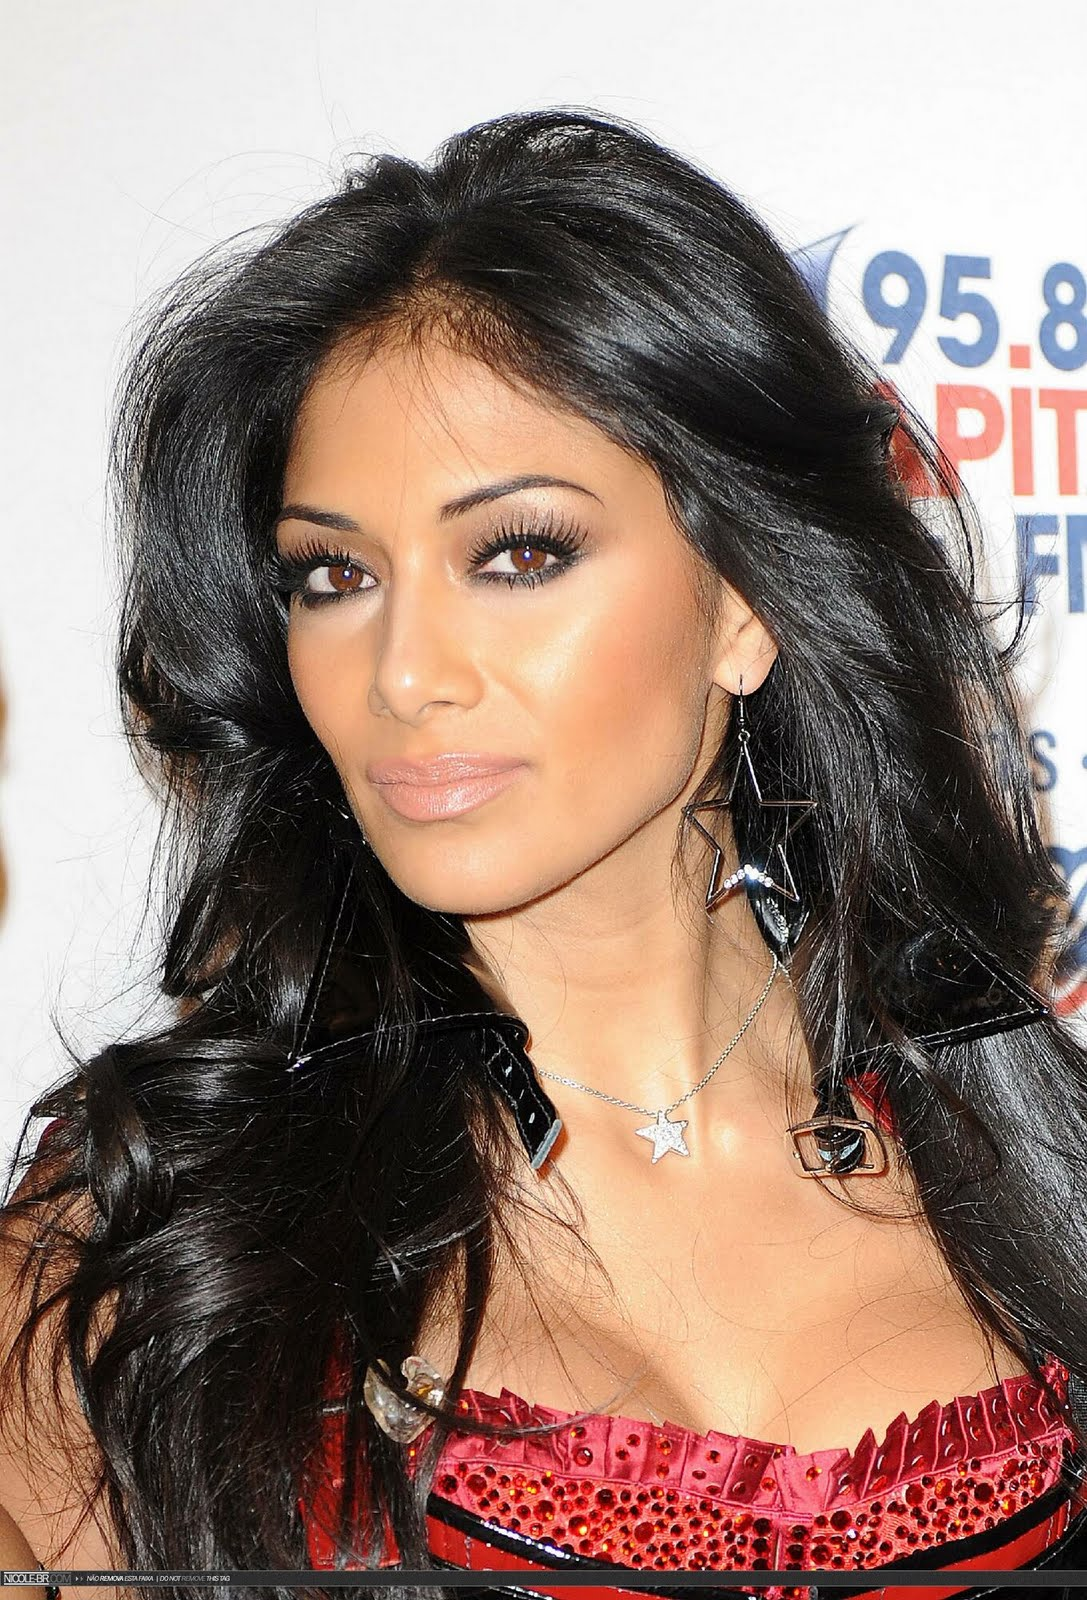 Nicole Scherzinger Fashionable Hairstyles Photos 04